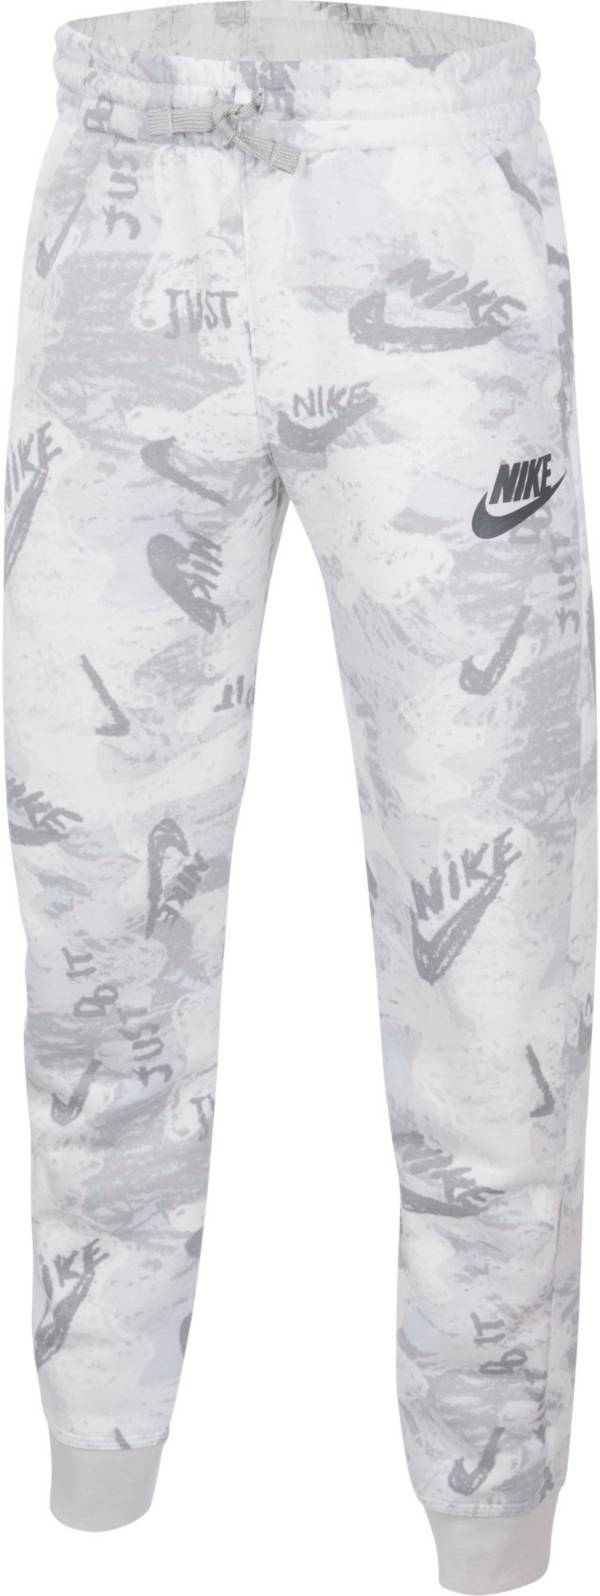 Nike Boys' Sportswear Club Fleece Jogger Pants product image